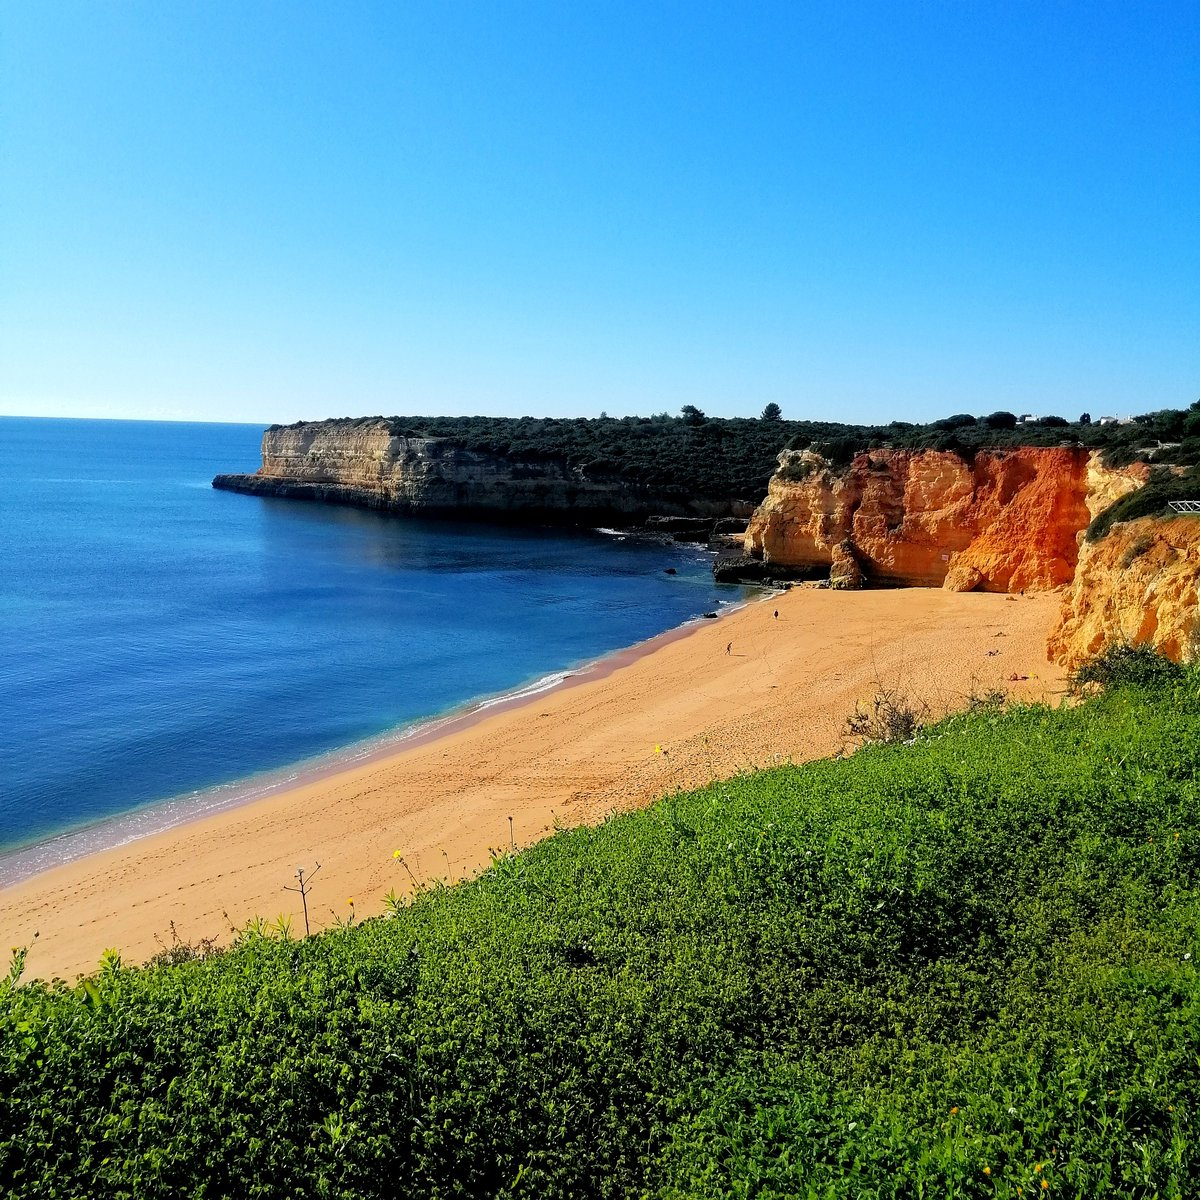 #tgif in this #dreamlocation Enjoy #nature, #ocean and #beach. Discover #portugalnow